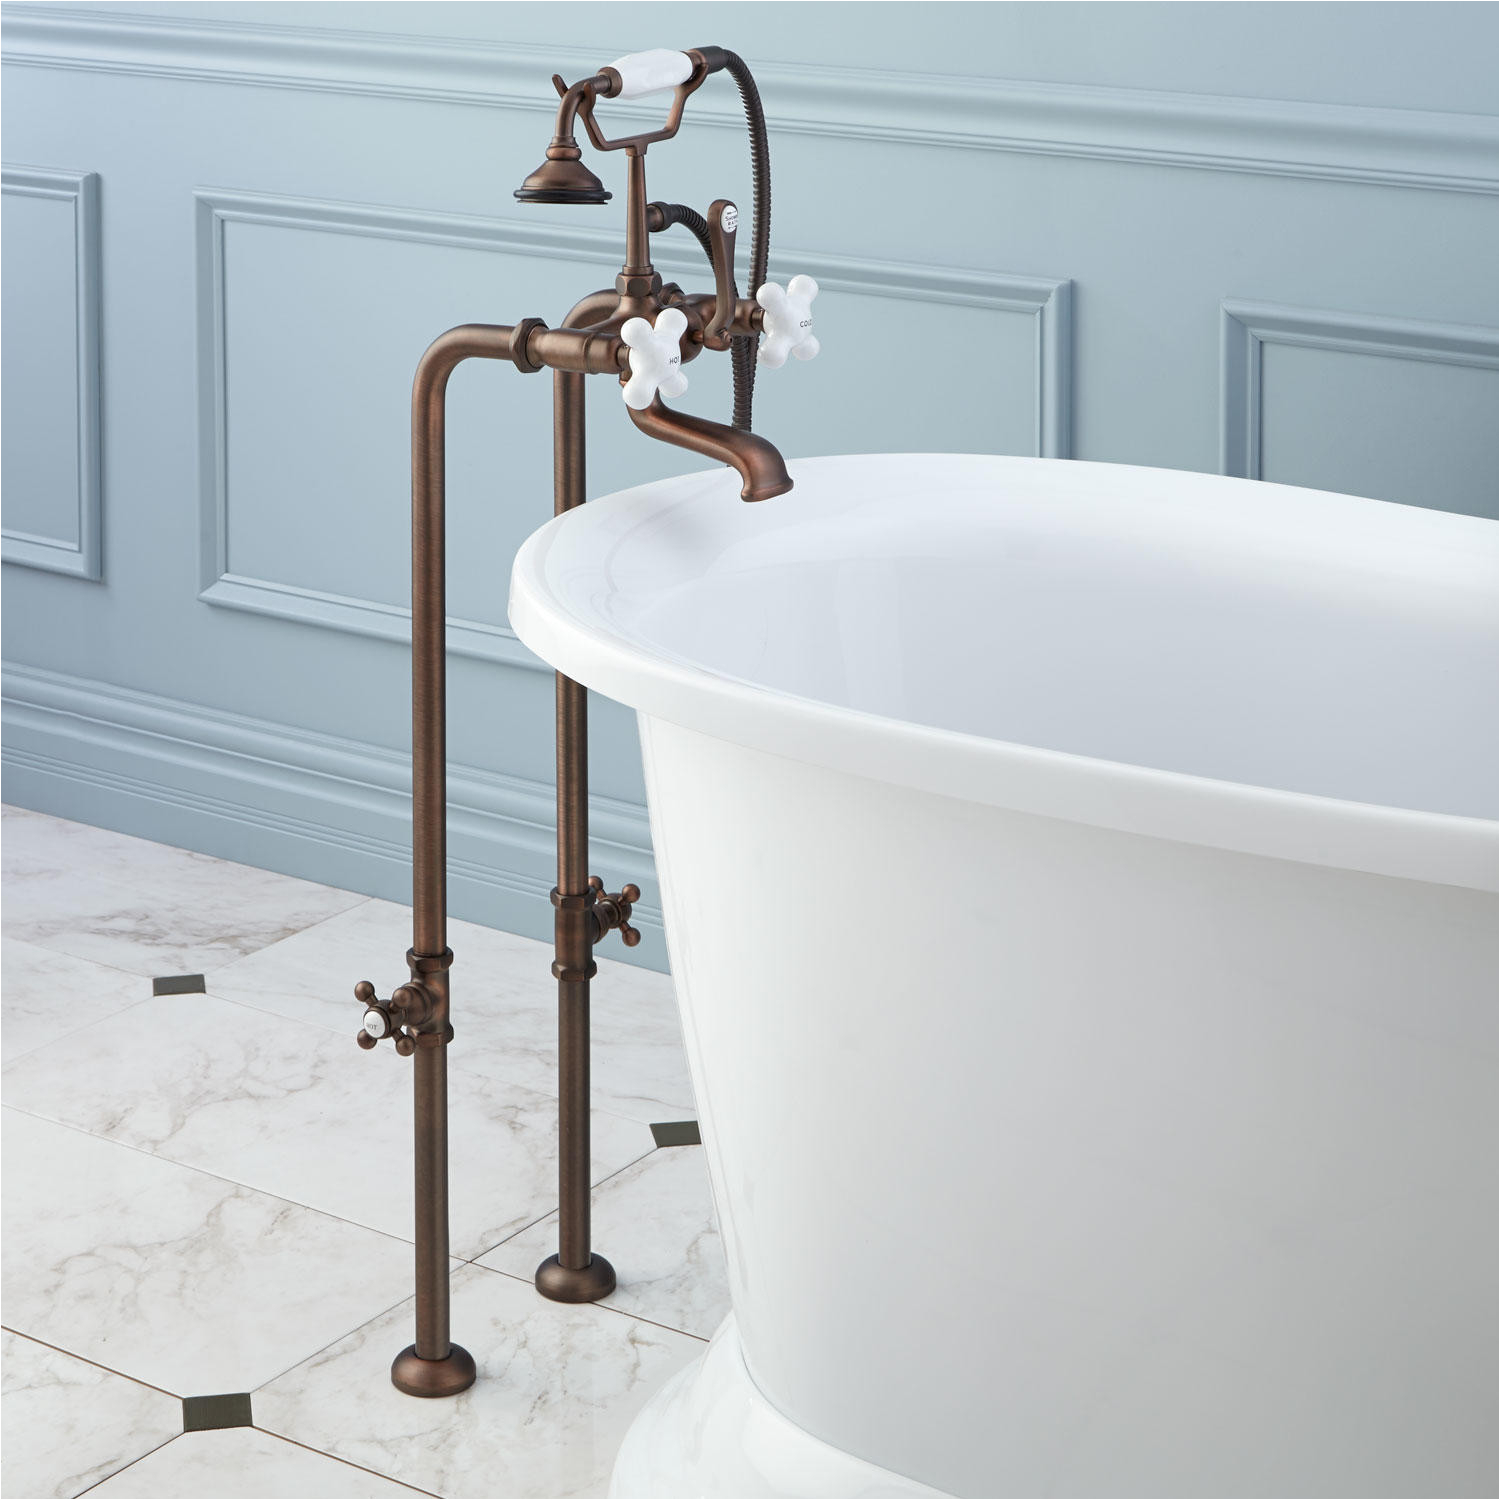 Freestanding Tub Faucet Valve Freestanding Telephone Tub Faucet Supplies and Valves